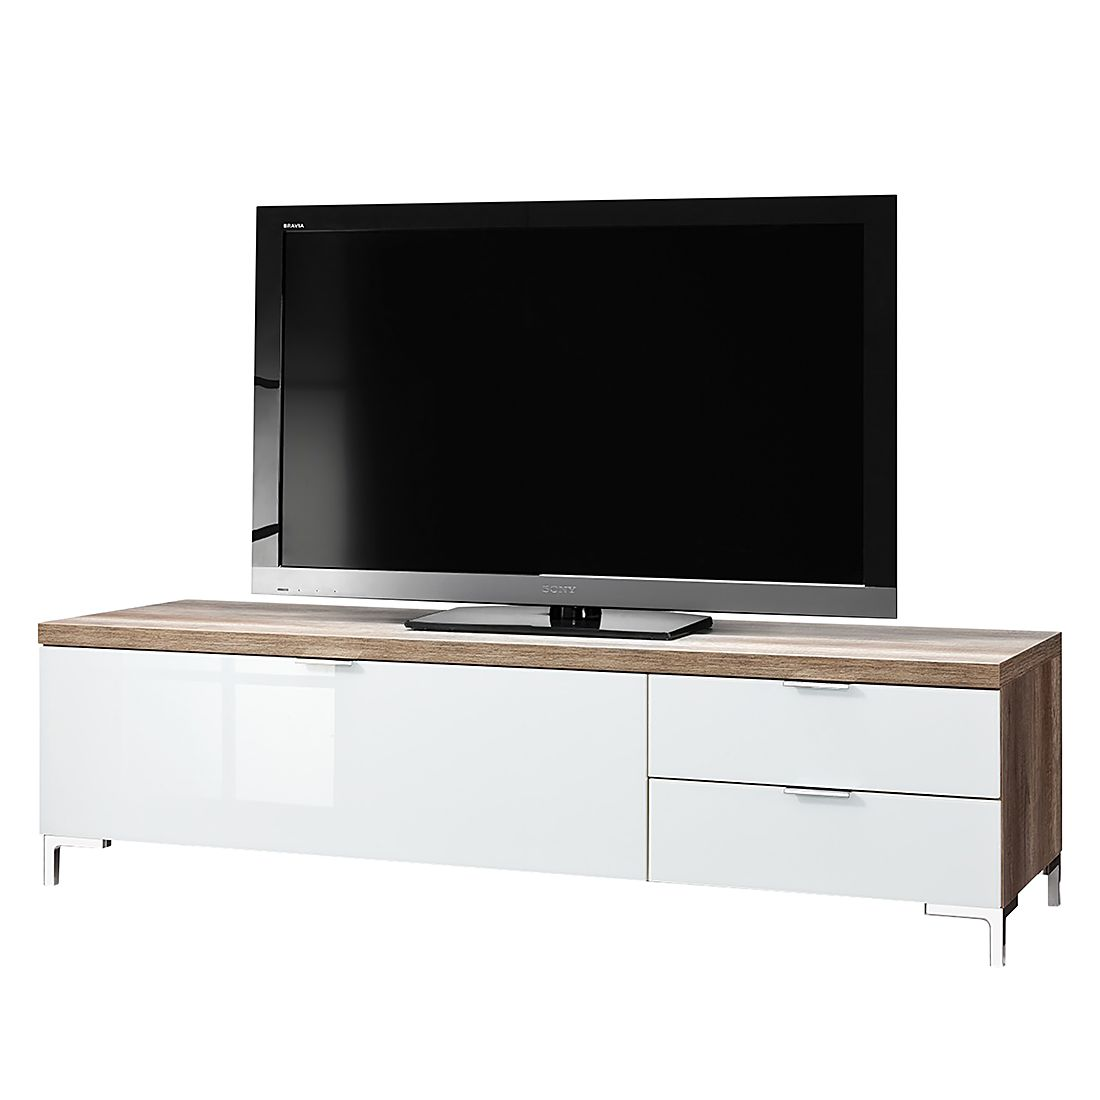 tv lowboard cleo iii wildeiche dekor glas wei chromf e cs schmal g nstig bestellen. Black Bedroom Furniture Sets. Home Design Ideas